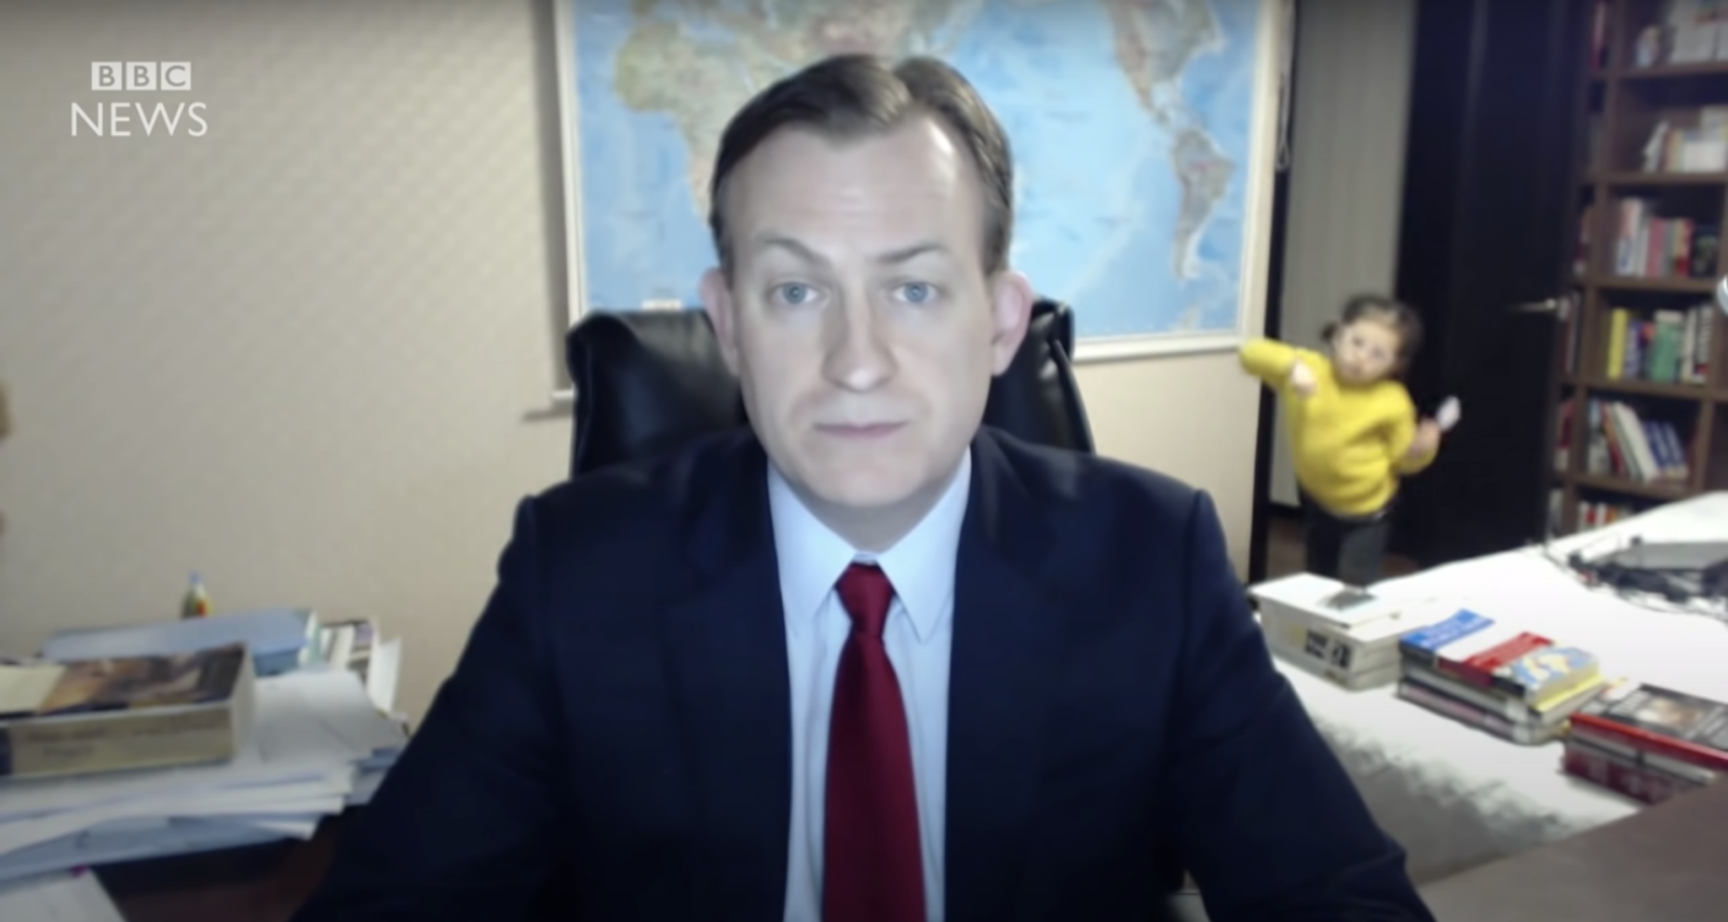 Children have interrupted remote work time as seen in this news clip from a British anchor.